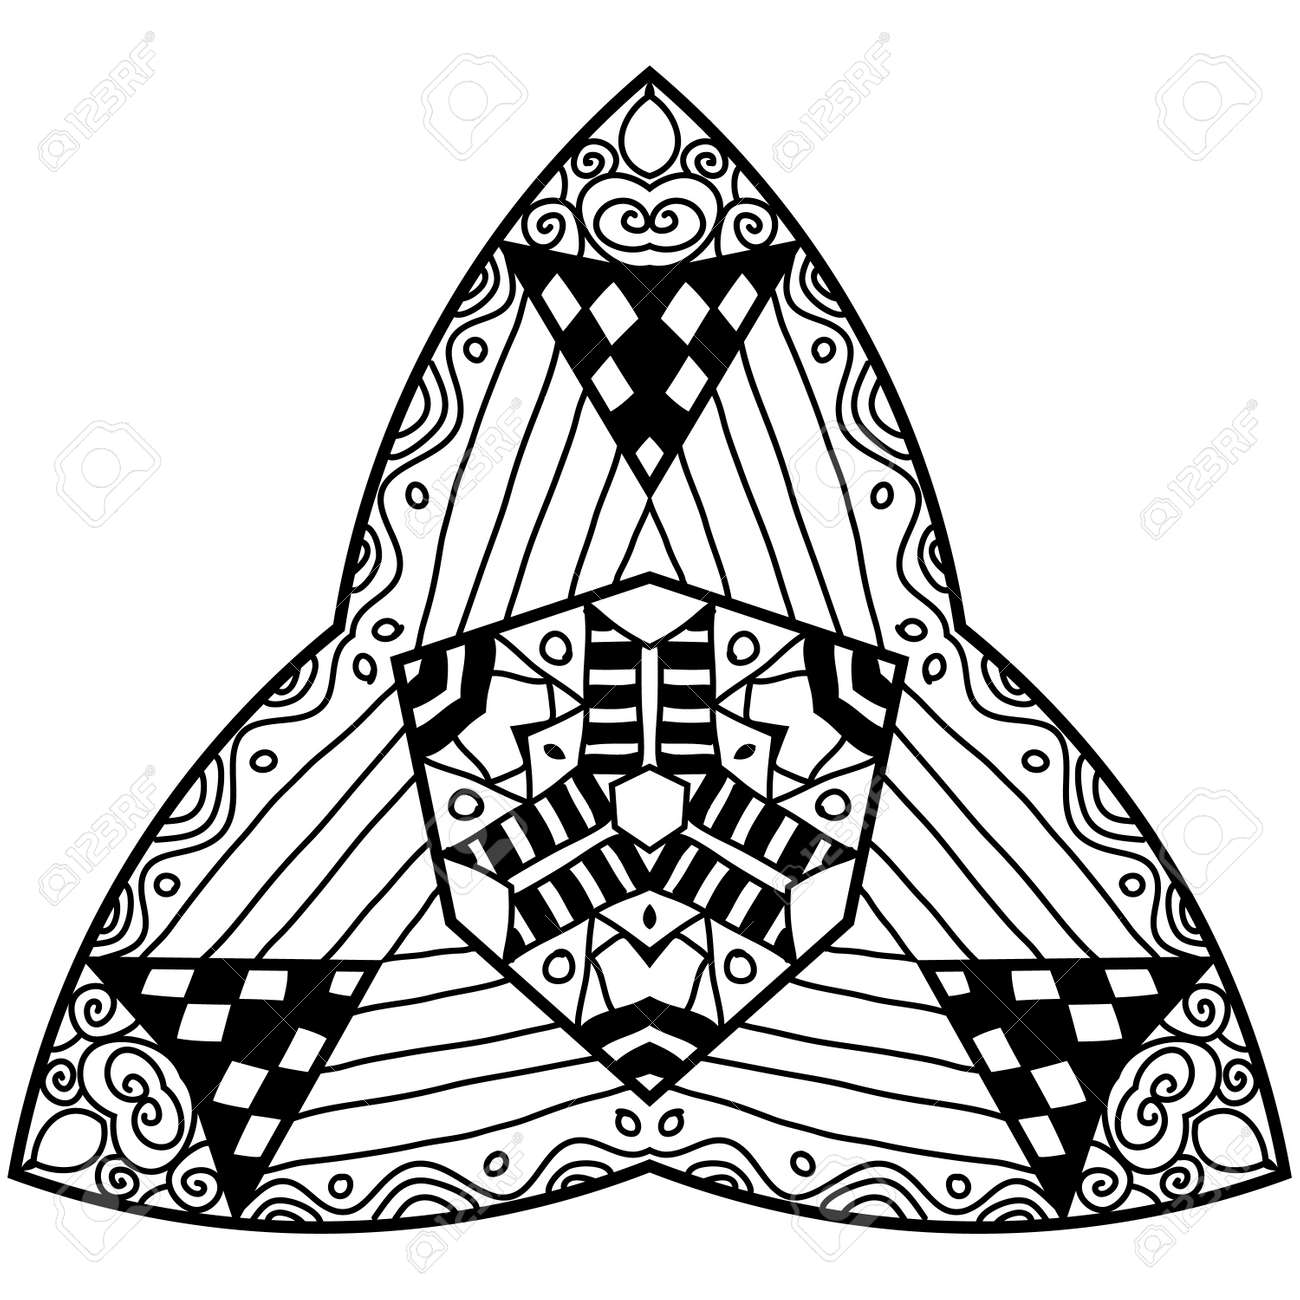 Triangle Element In Zendoodle Style. Hand Drawn Mandala With ...